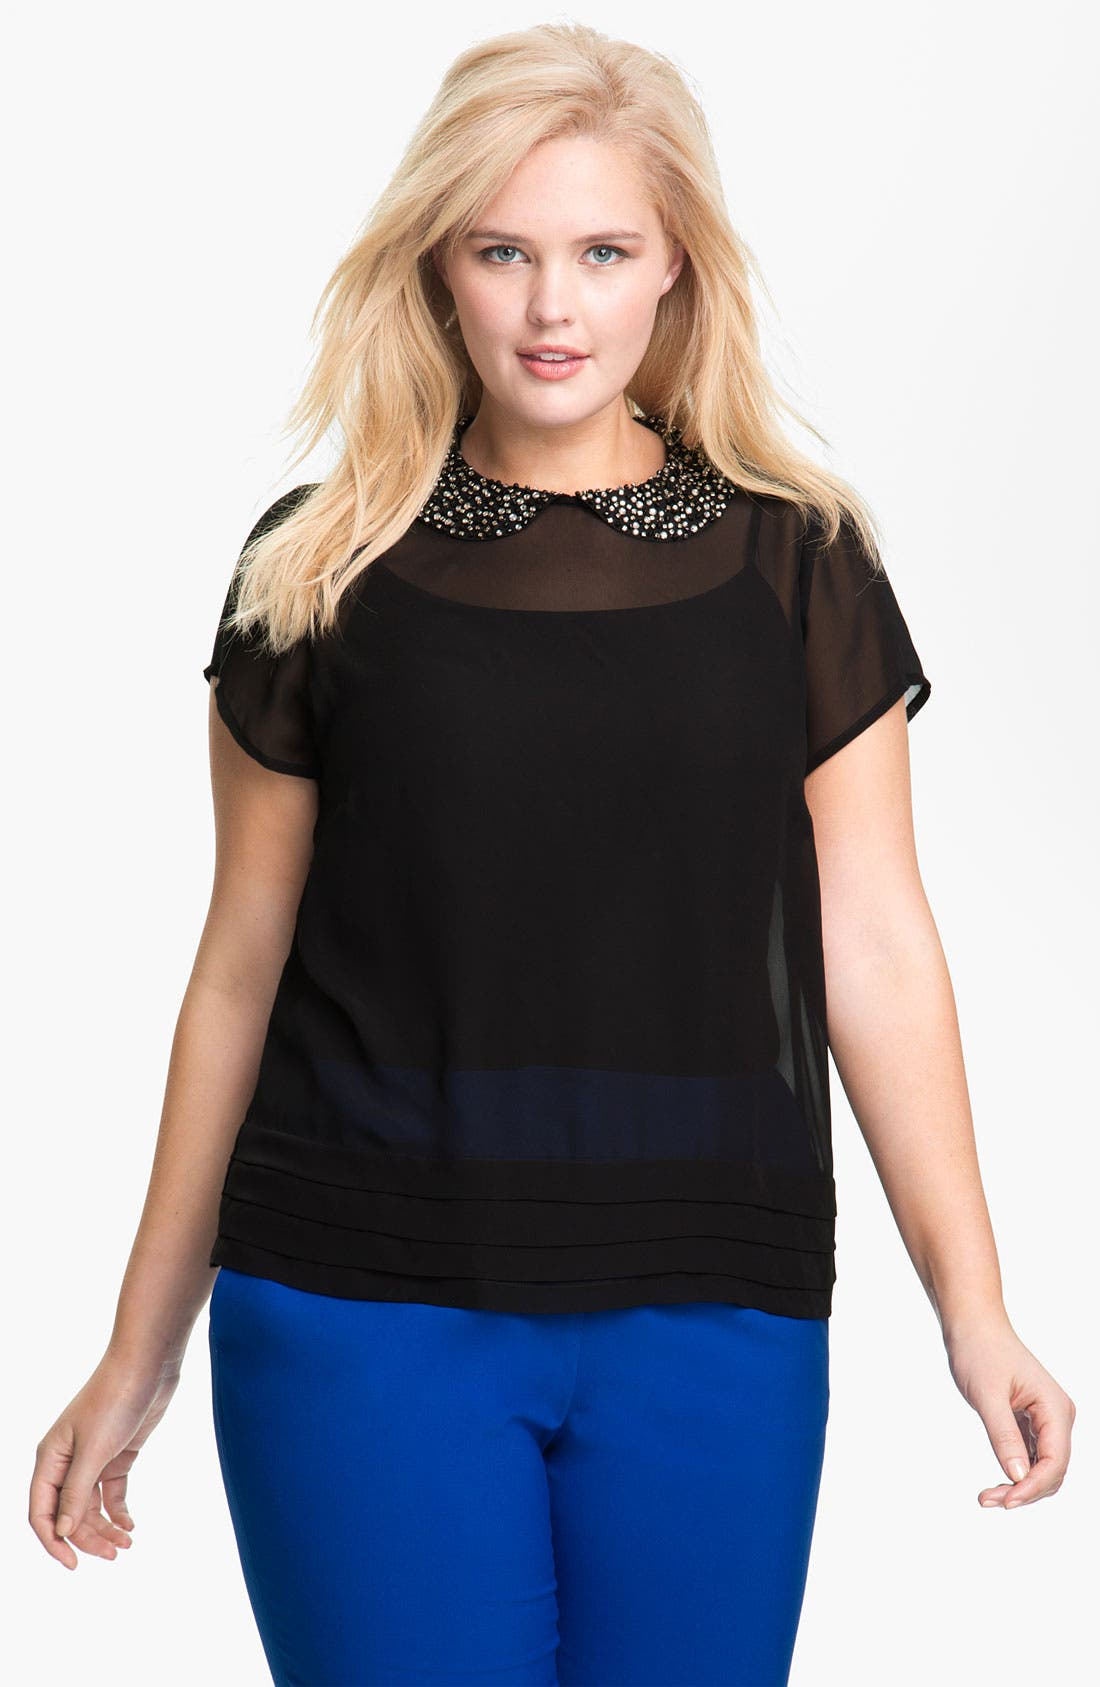 Alternate Image 1 Selected - Vince Camuto Jewel Collar Sheer Top (Plus)